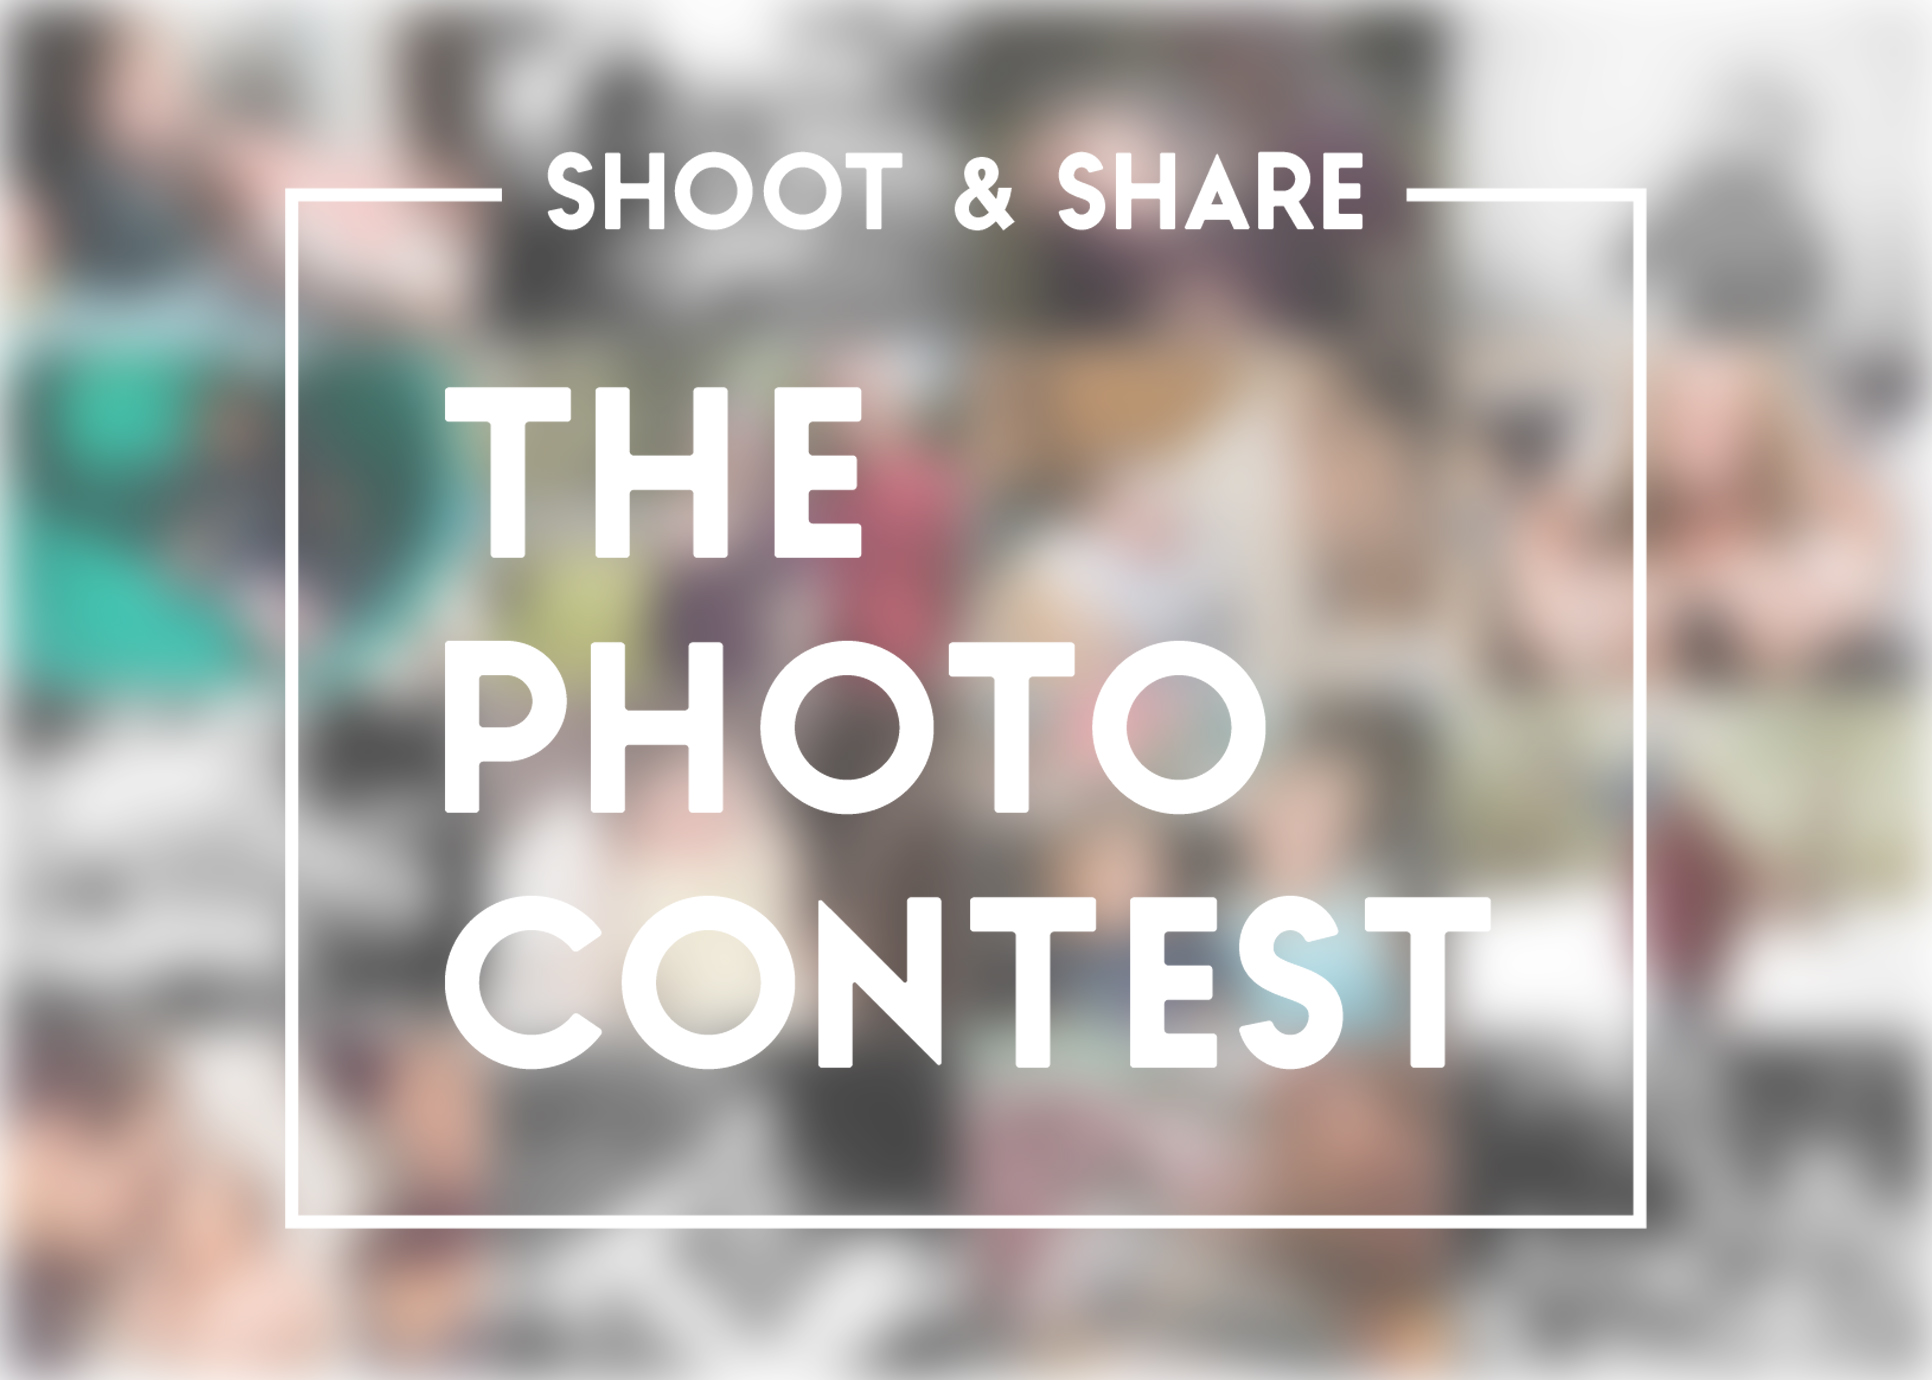 Shoot & Share entries